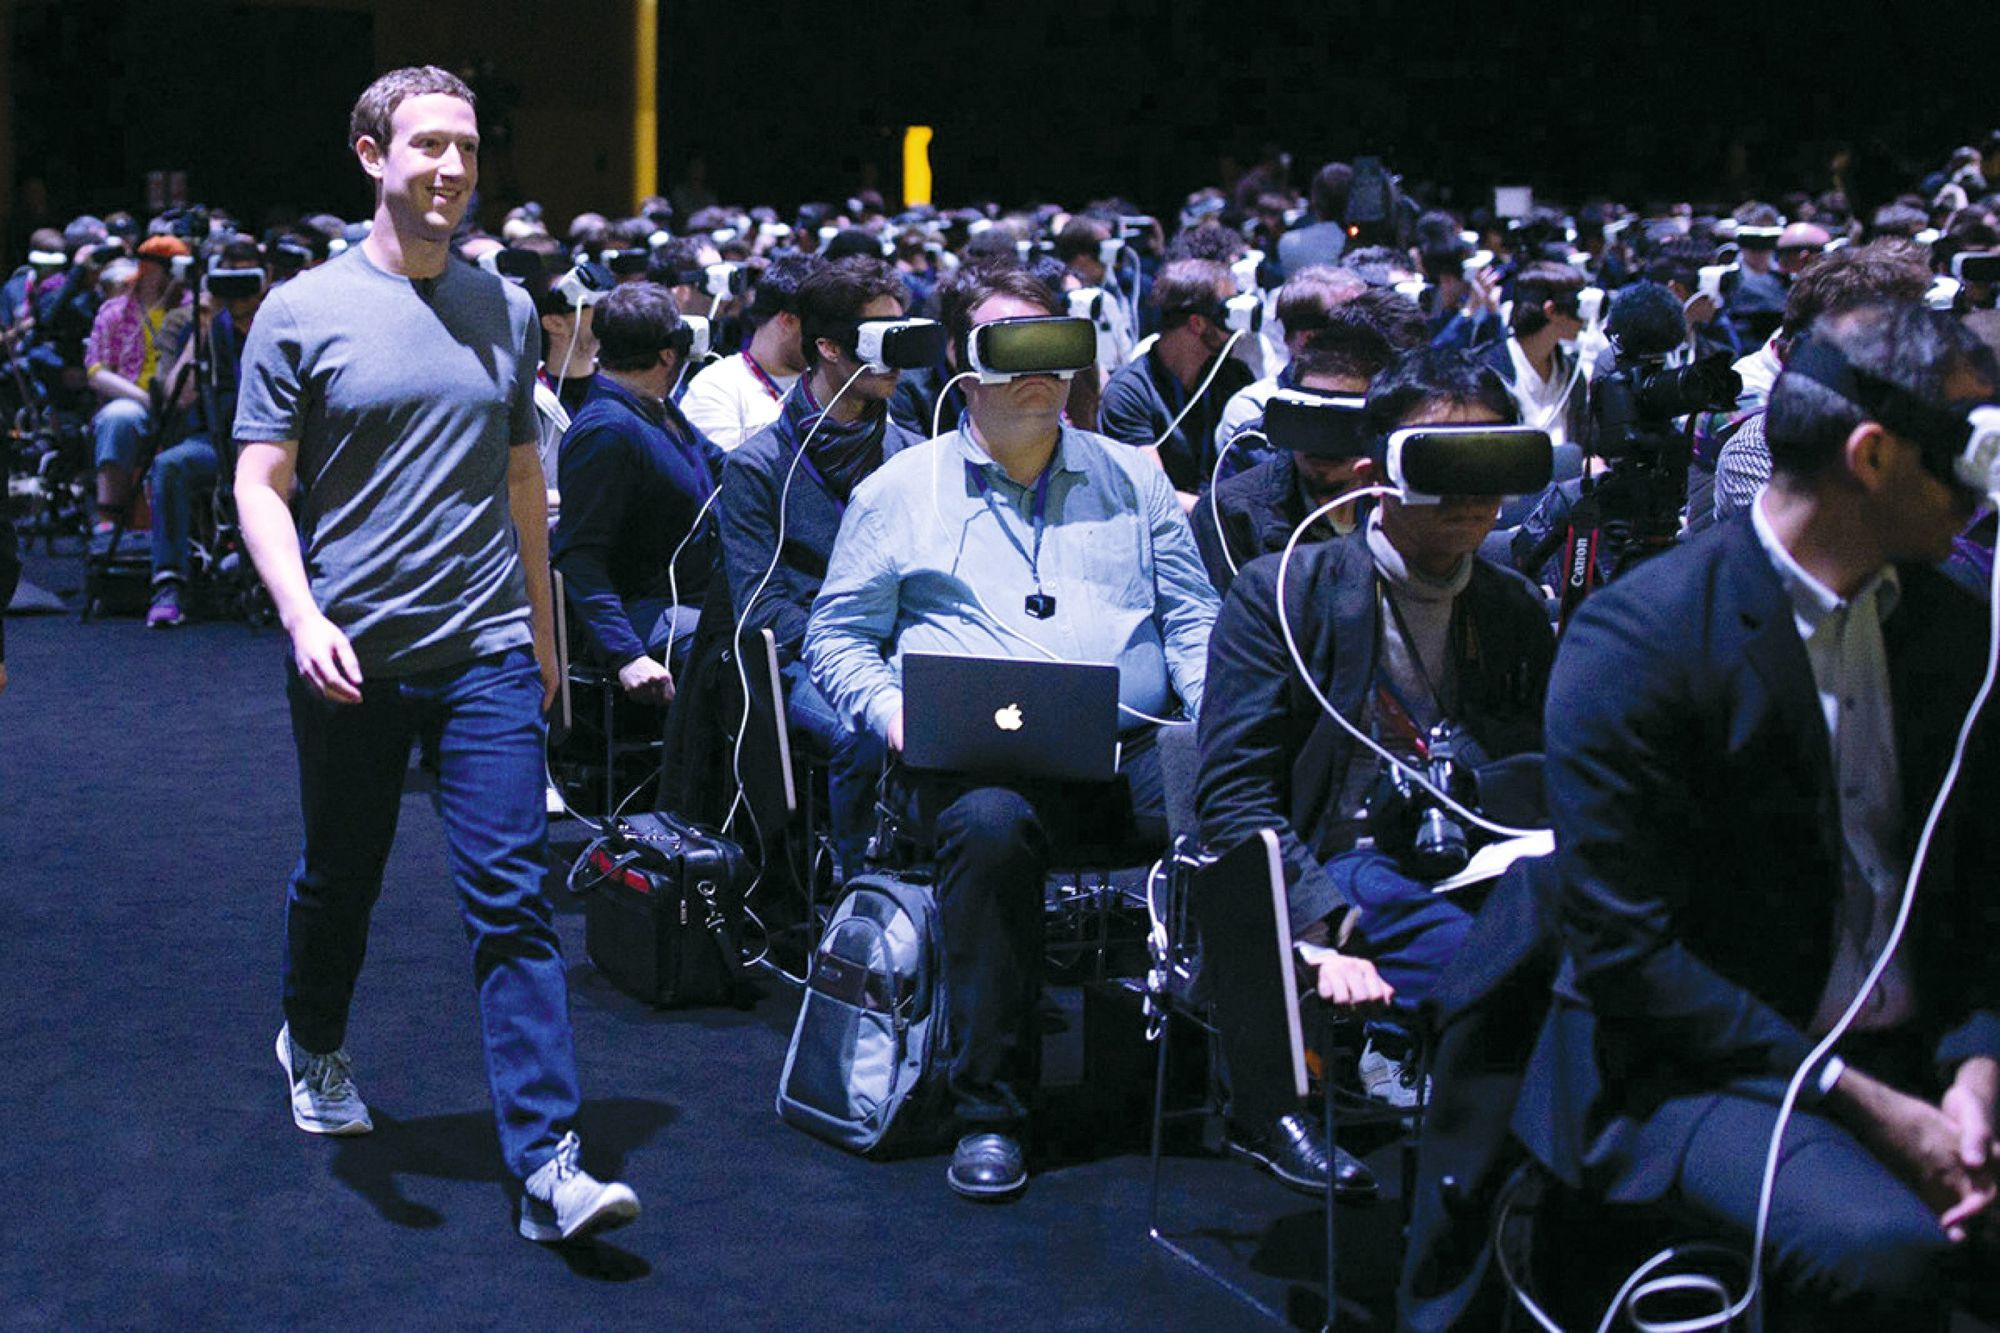 Mark Zuckerberg (fondateur de Facebook) au « Mobile World Congress » de Barcelone, 21 février 2016.